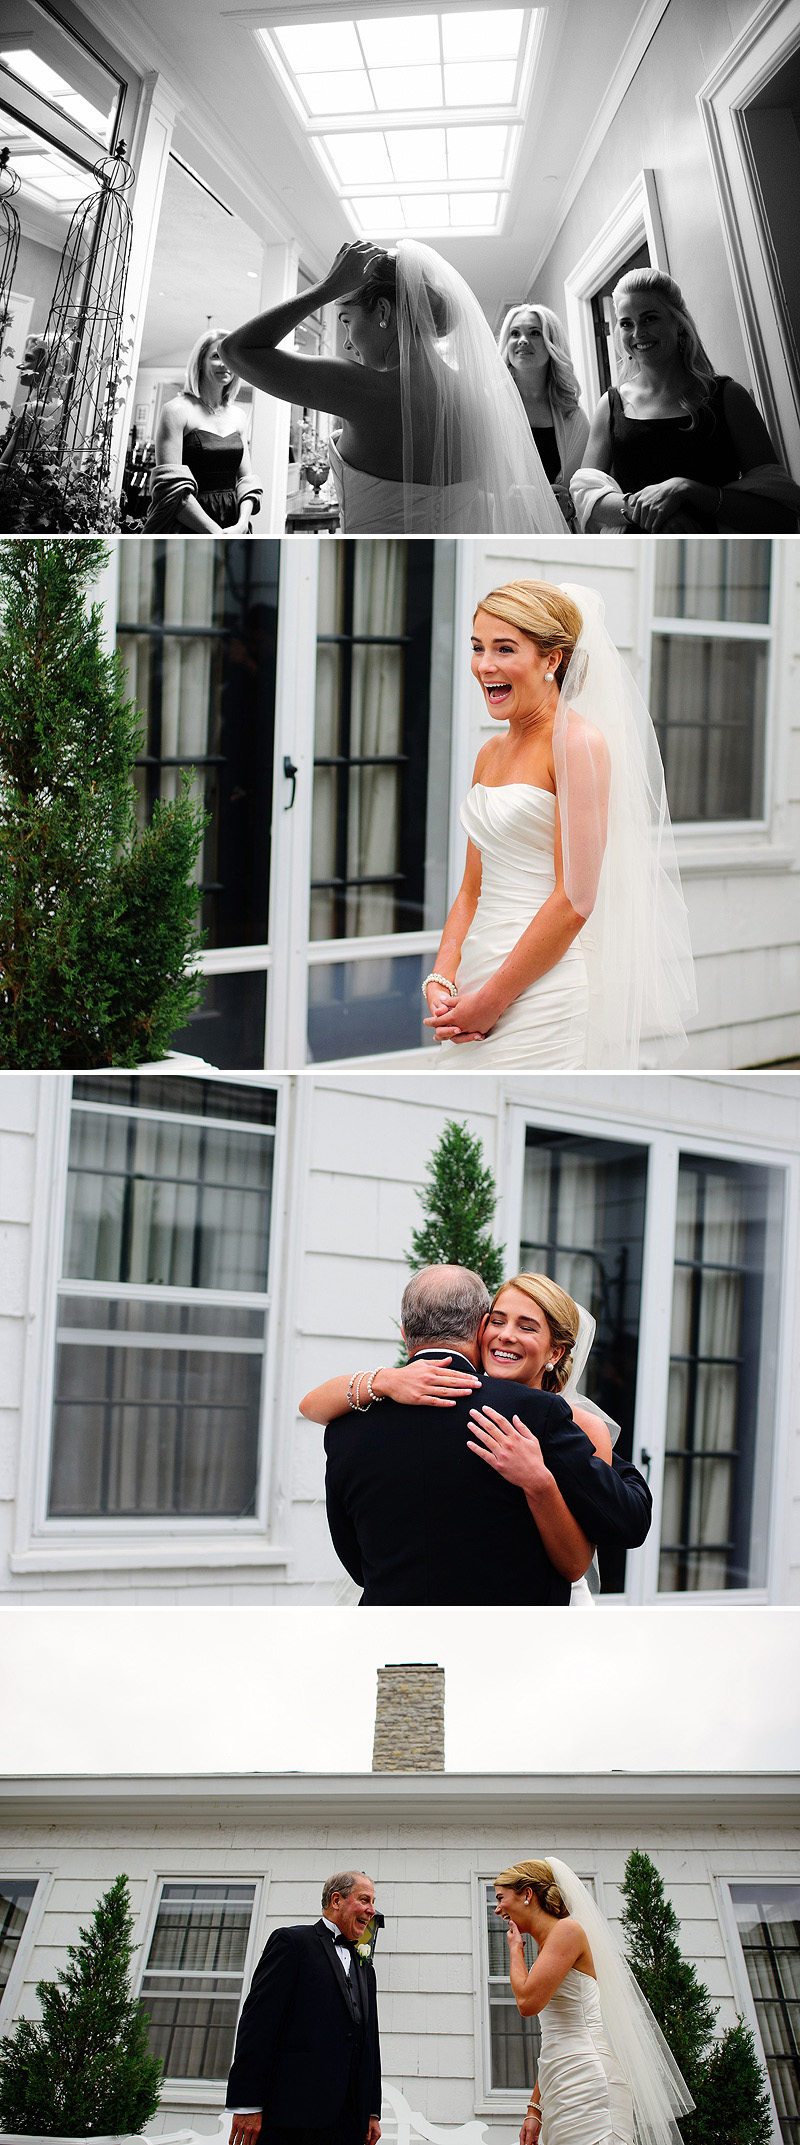 Emotional moment between her father on her wedding day.